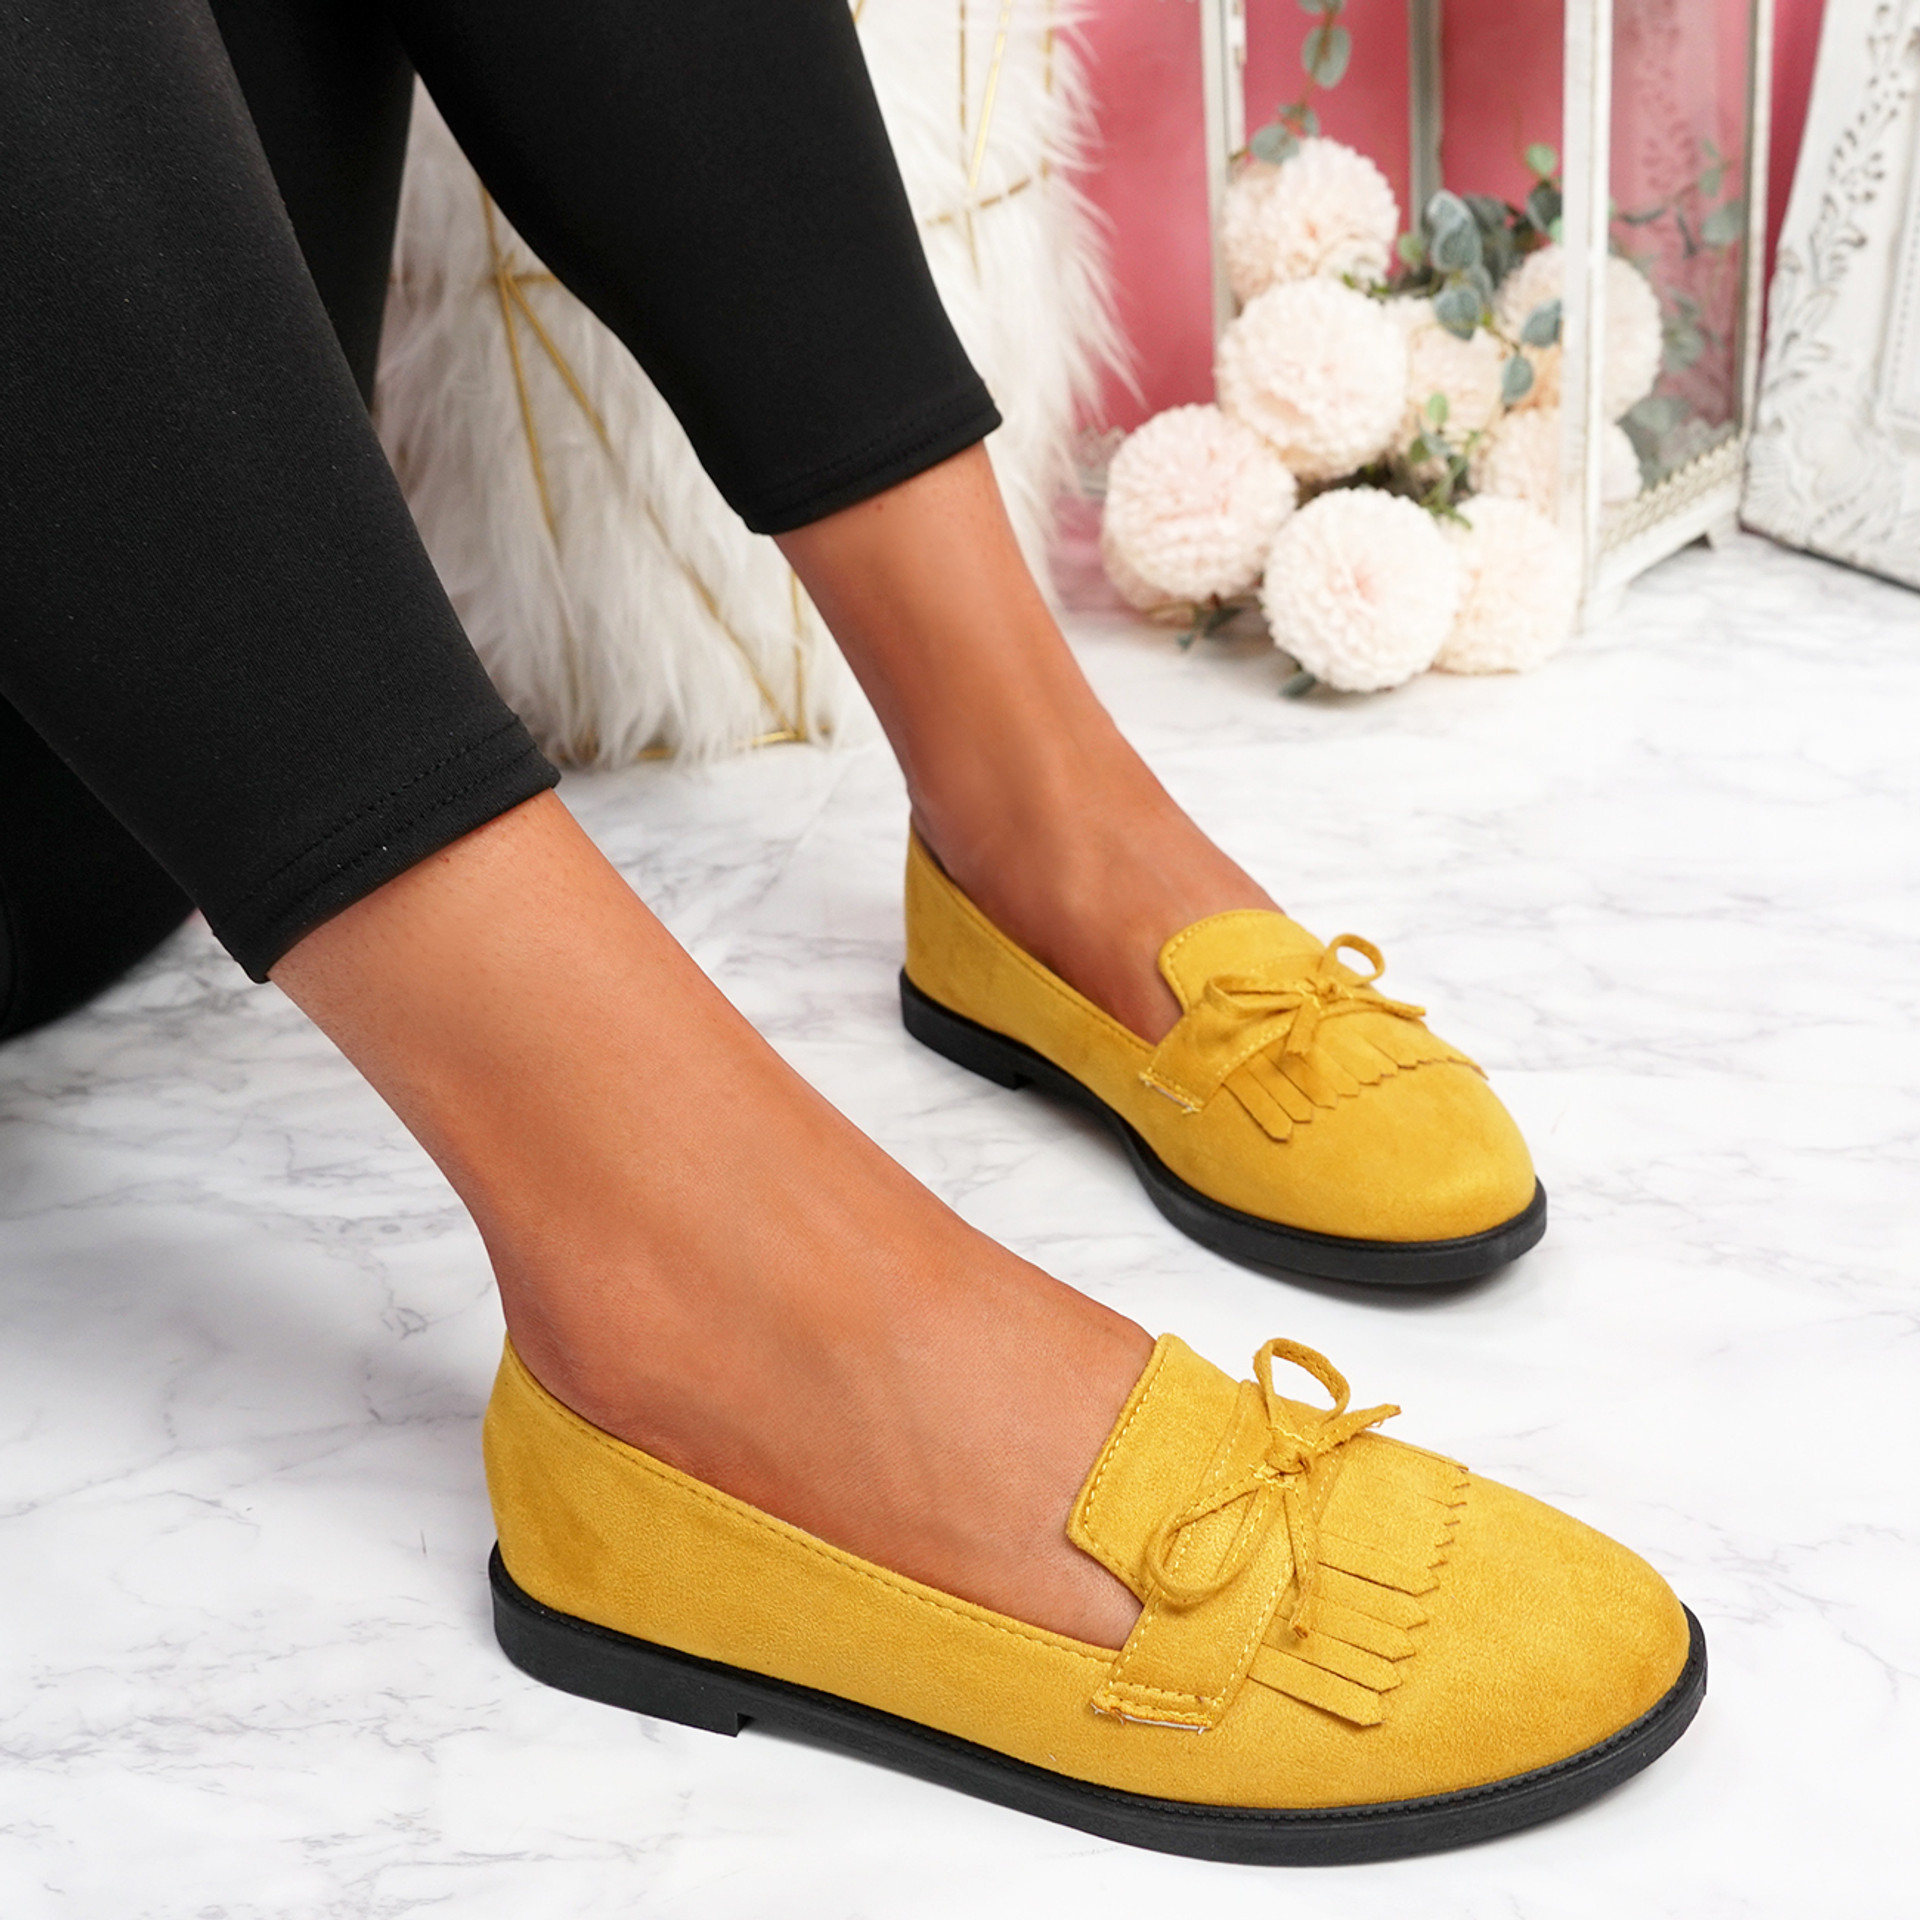 Kolly Yellow Bow Fringe Ballerinas